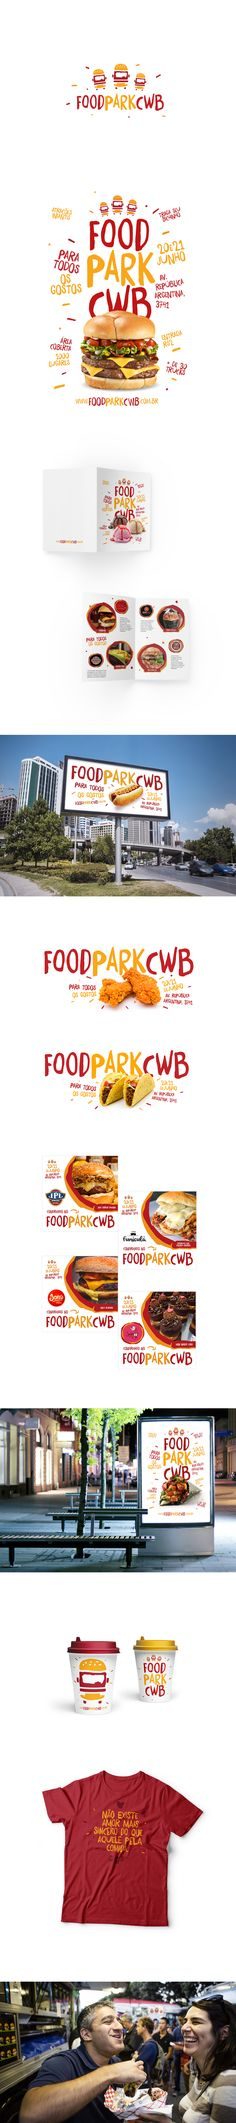 Sandwich clipart food festival Food de (tutorial visual Poster